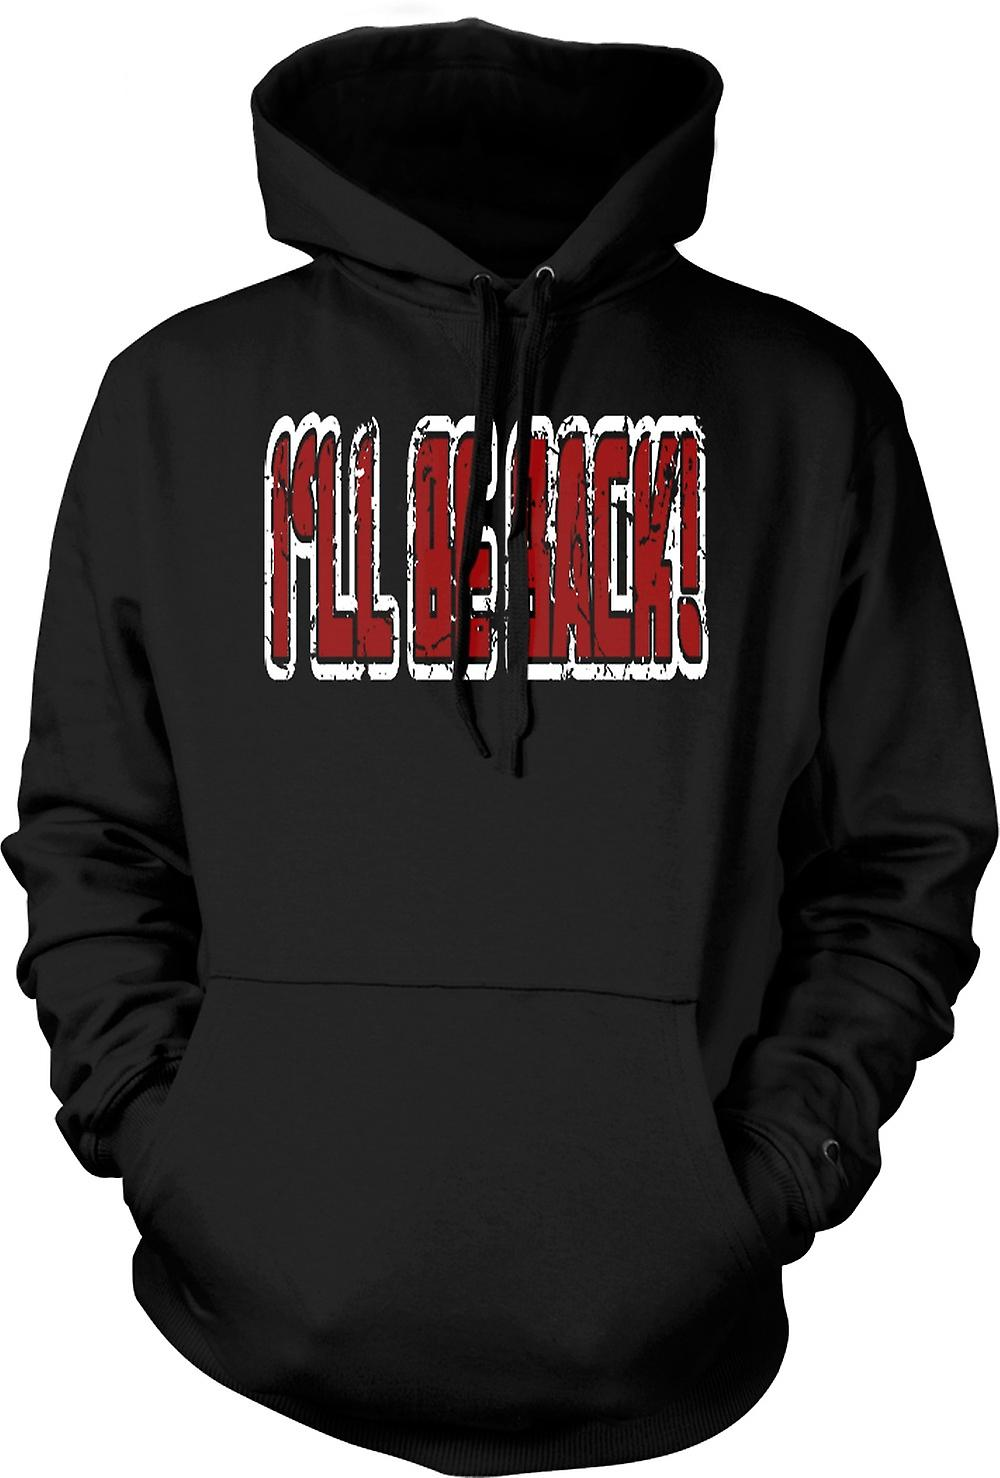 Mens Hoodie - Terminator I Be Back - grappig